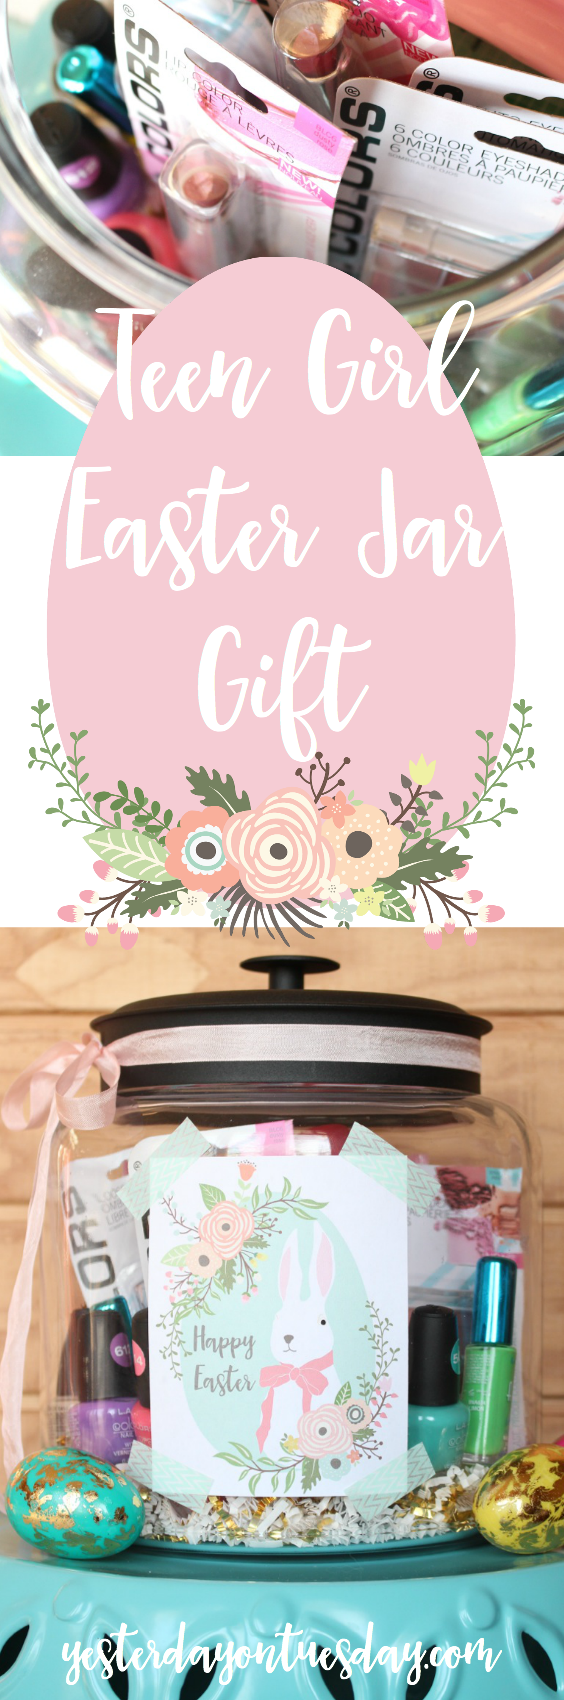 Teen girl easter jar gift yesterday on tuesday teen girl easter jar gift pretty easter present idea for teen girls including easter printables negle Choice Image